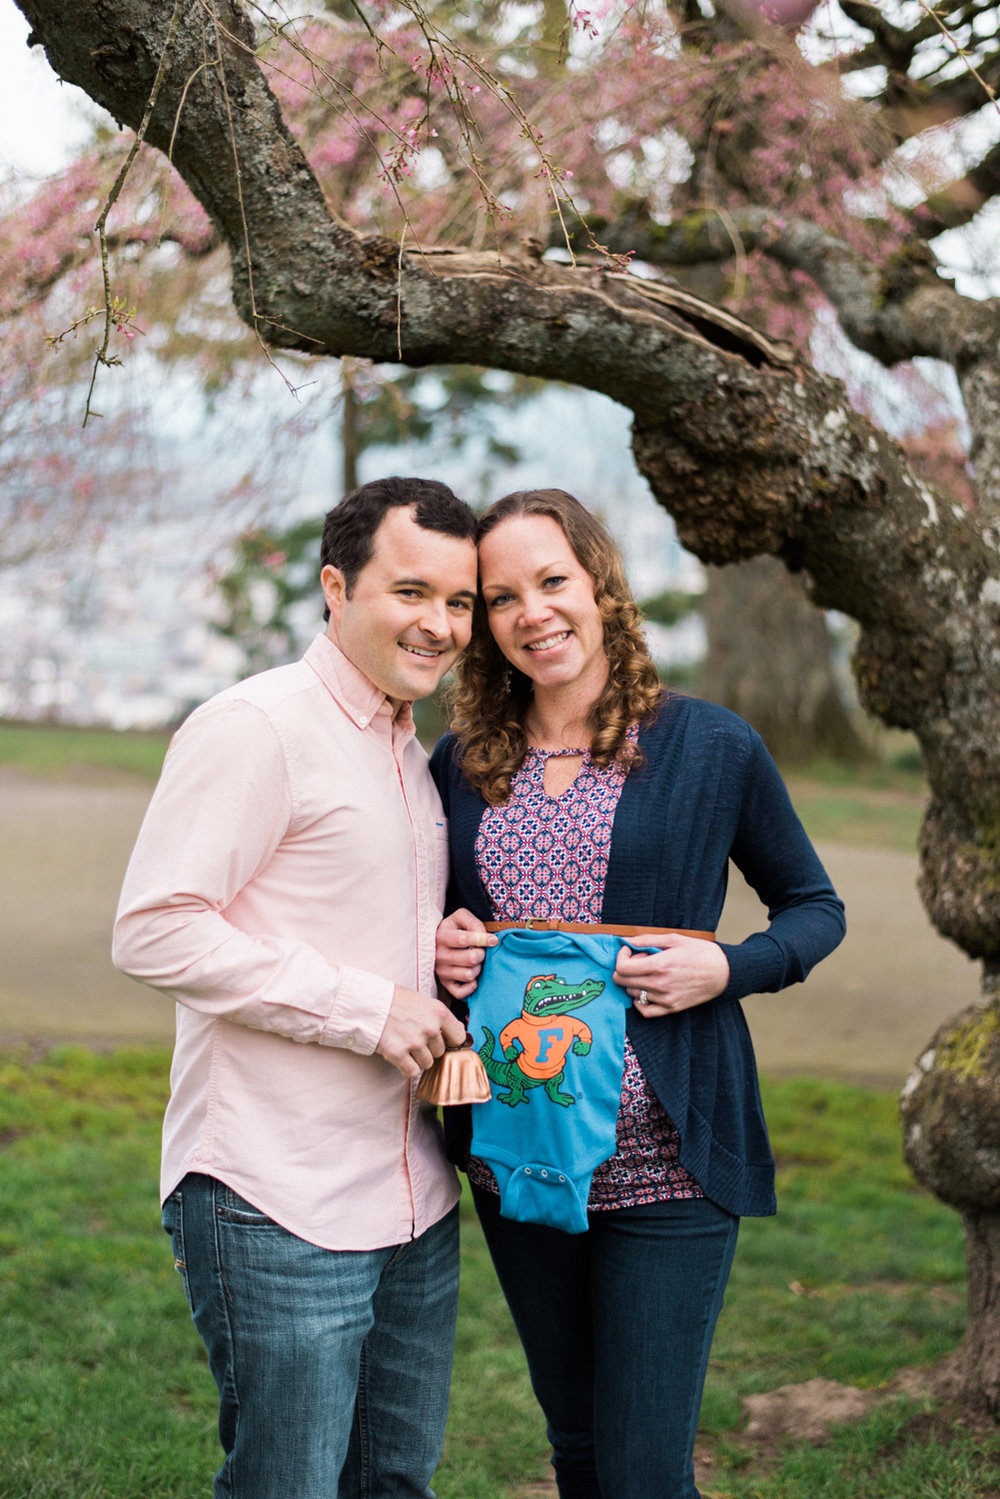 pittock-mansion-maternity-photography-portland-cherry-blossom-shelley-marie-photo-05.jpg